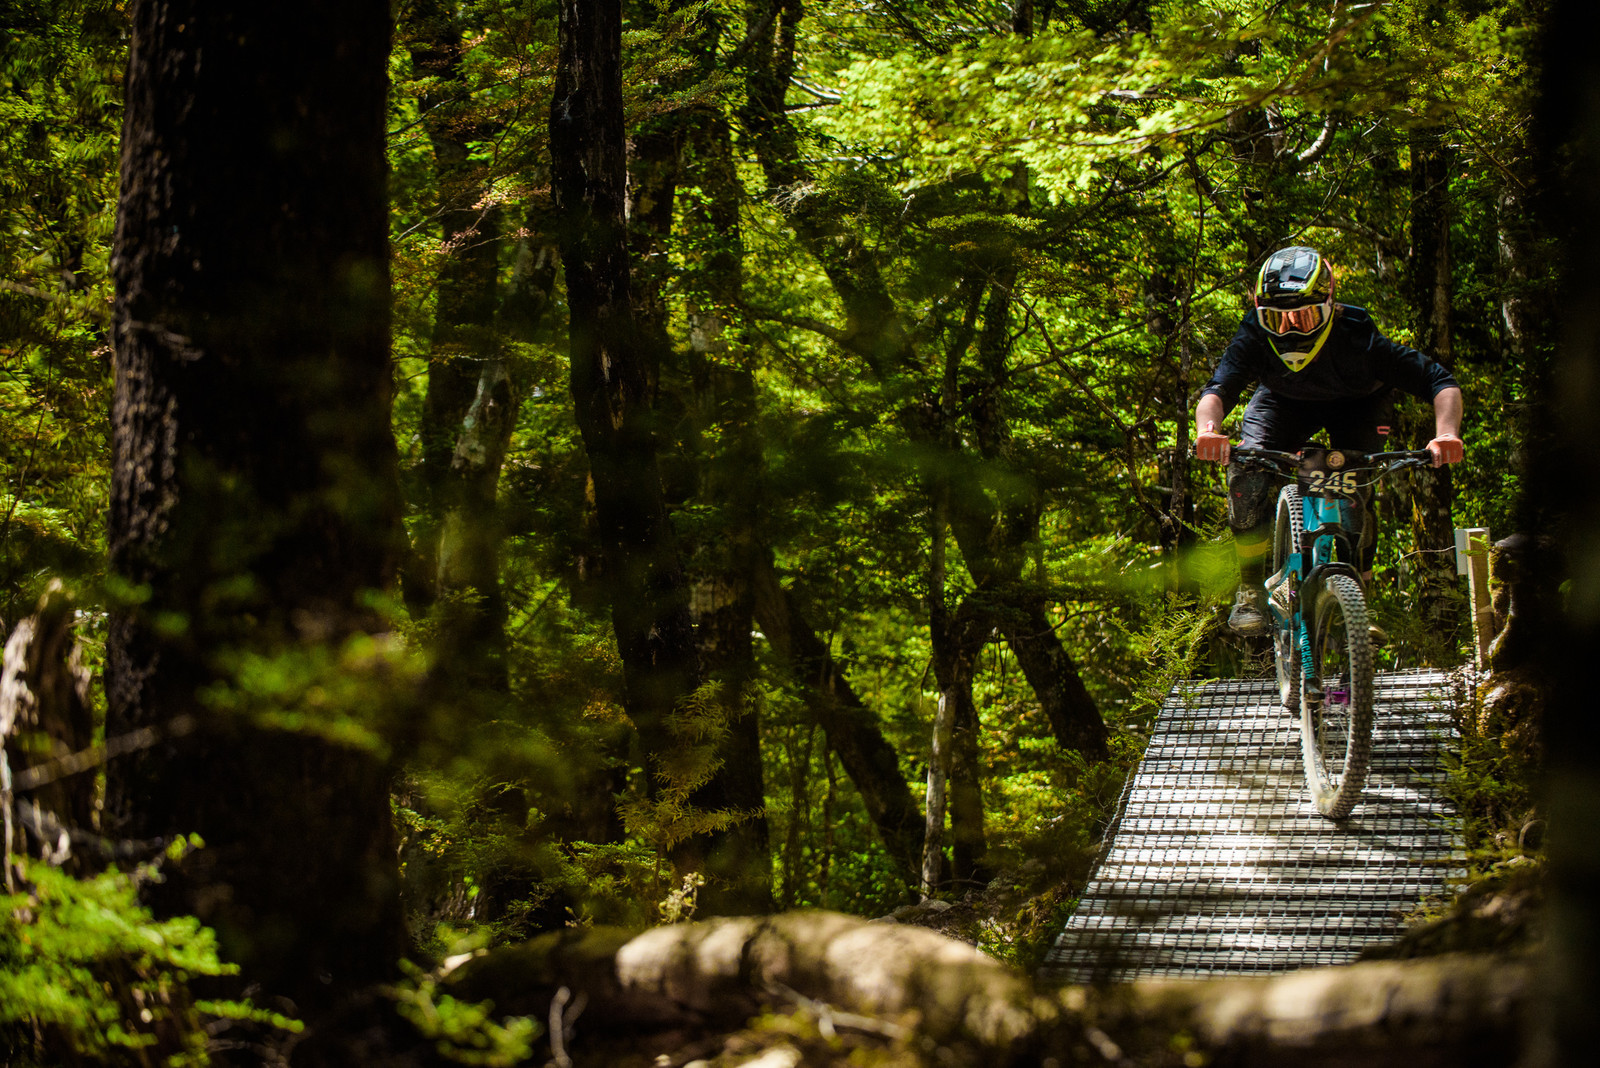 Cullen Paurini - 2019 Dodzy Memorial Enduro - Mountain Biking Pictures - Vital MTB